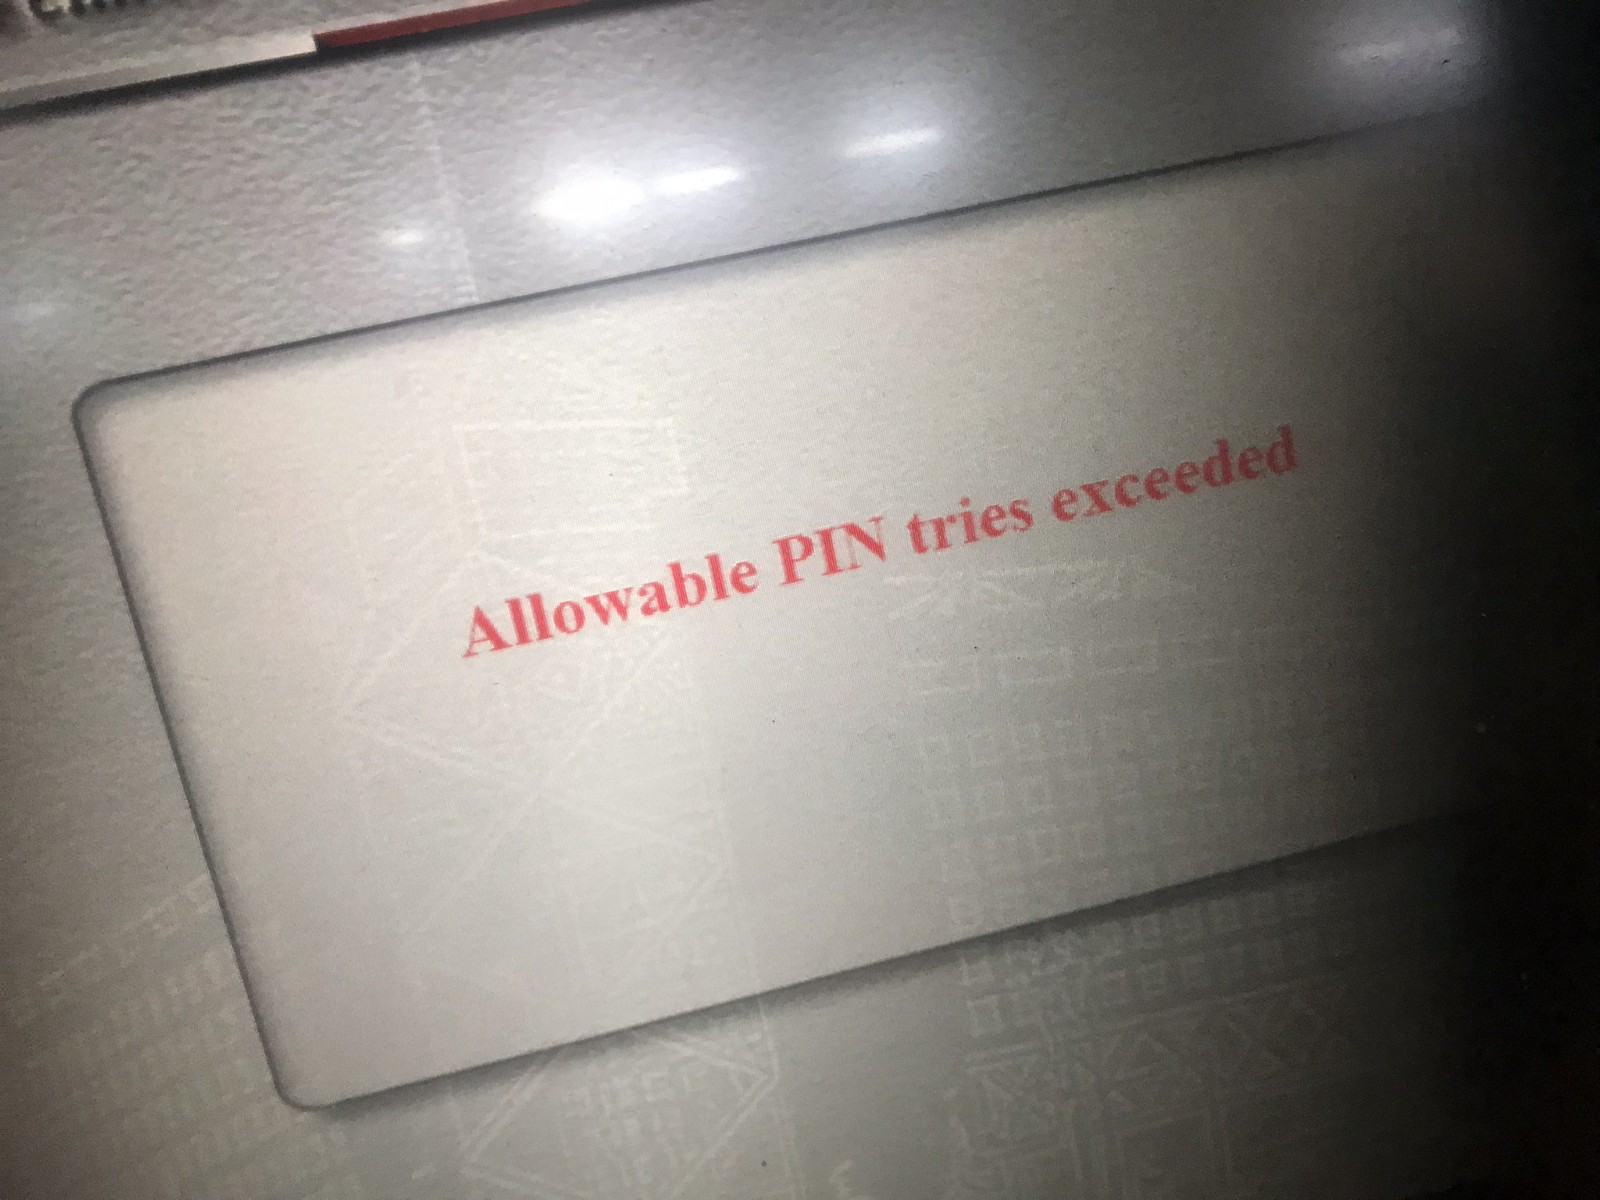 Another ATM error.